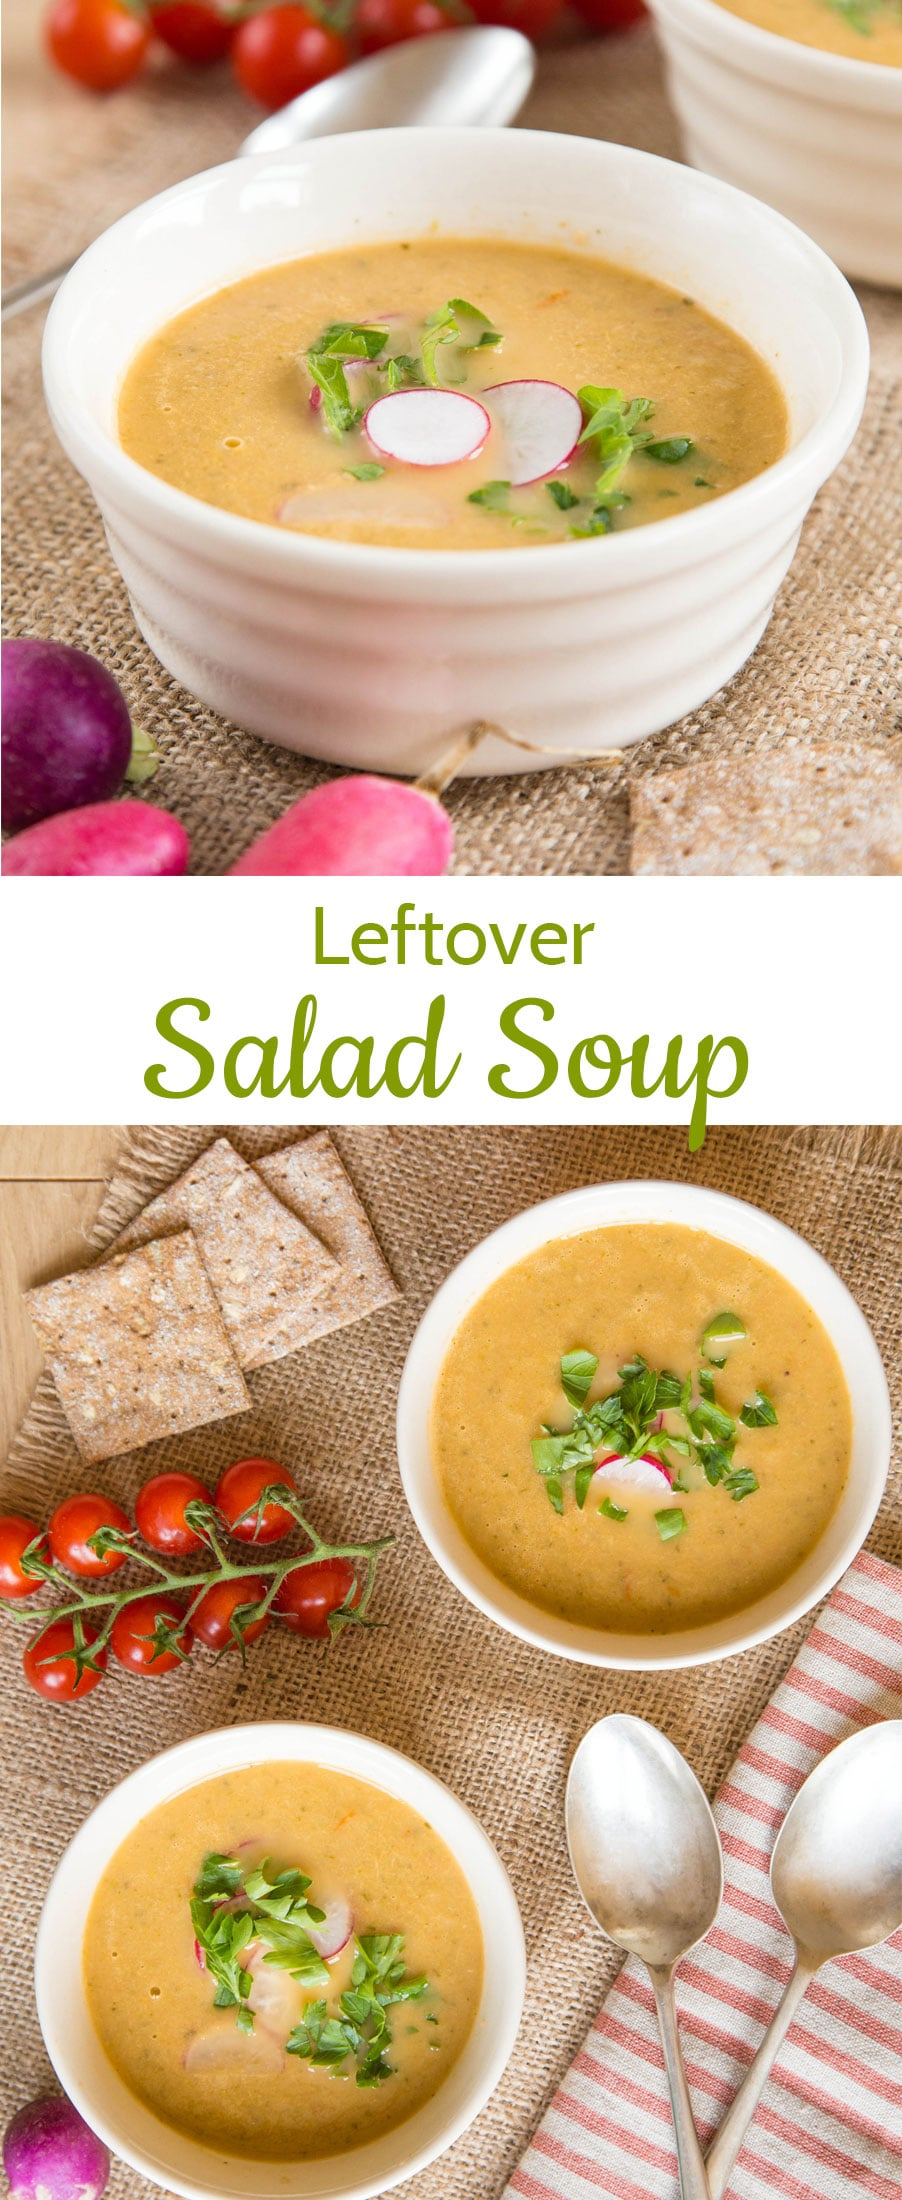 This delicious leftover salad soup is the perfect answer when wondering what to do when you have too much dressed salad. It's quick and easy to make, tastes great and cuts food waste too.